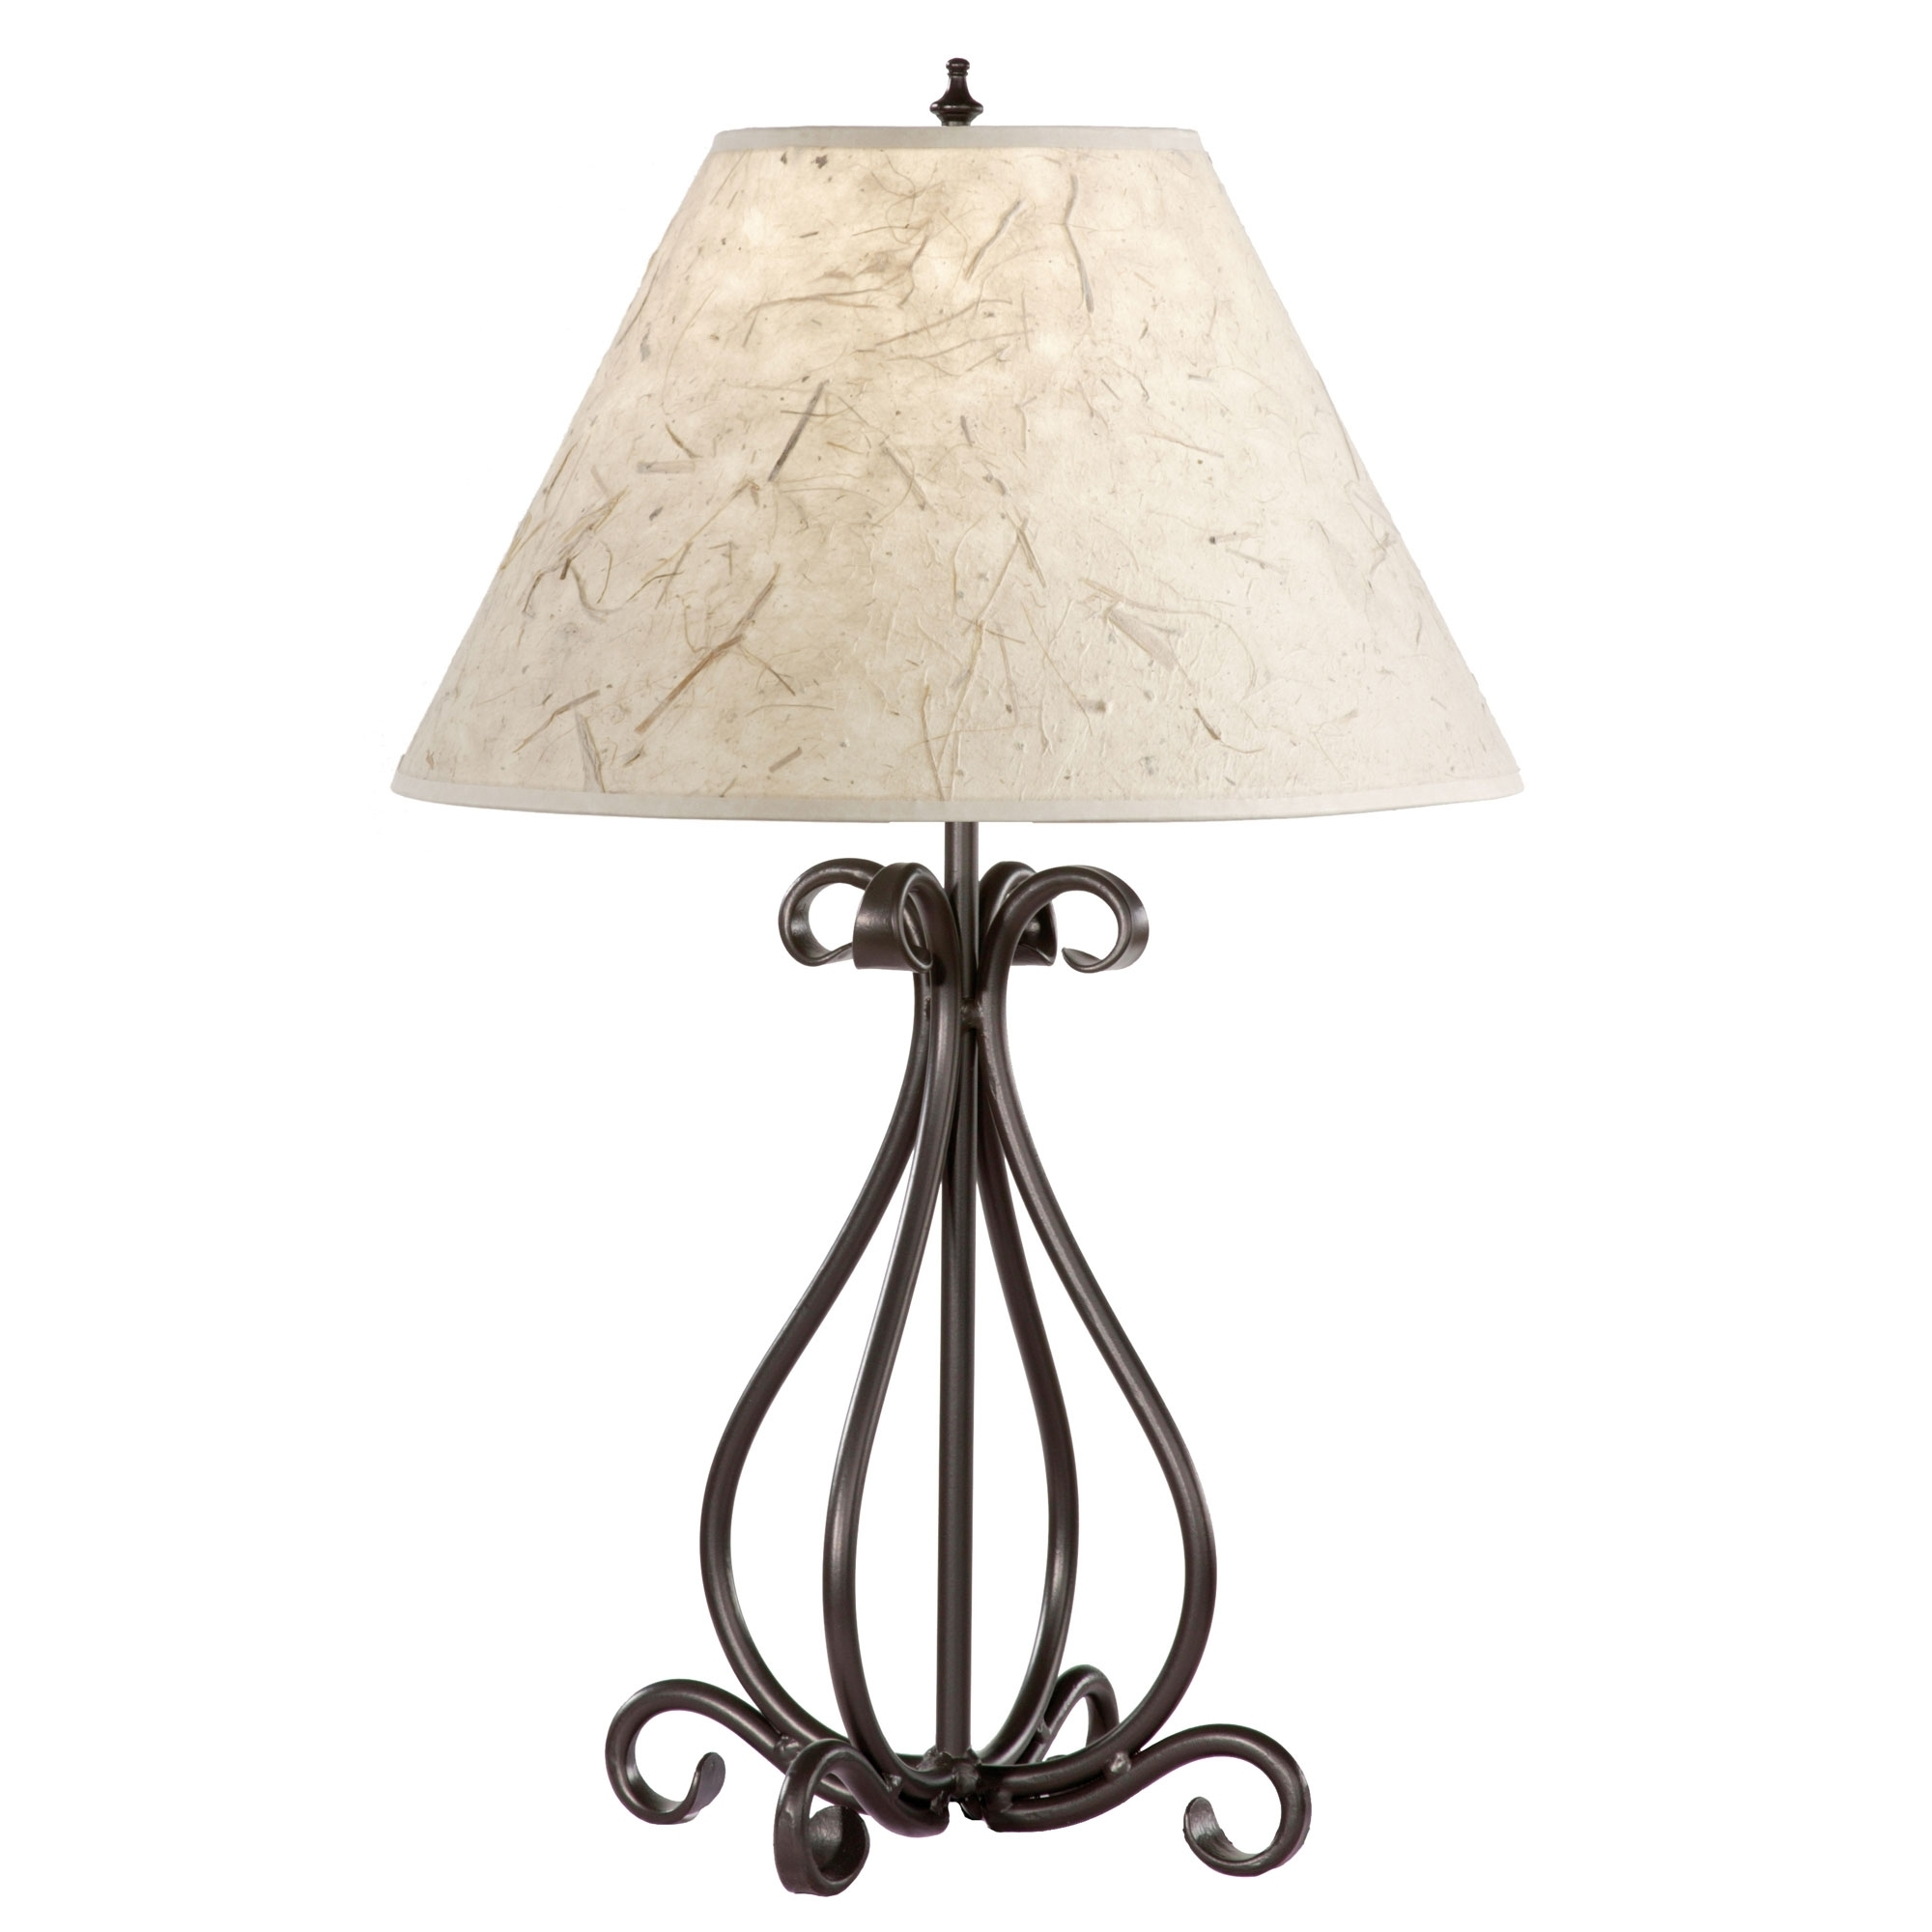 2018 Wrought Iron Living Room Table Lamps Intended For Table Lamps At Lowes Cordless Target Lamp Shades With Usb Port Uk (View 14 of 15)